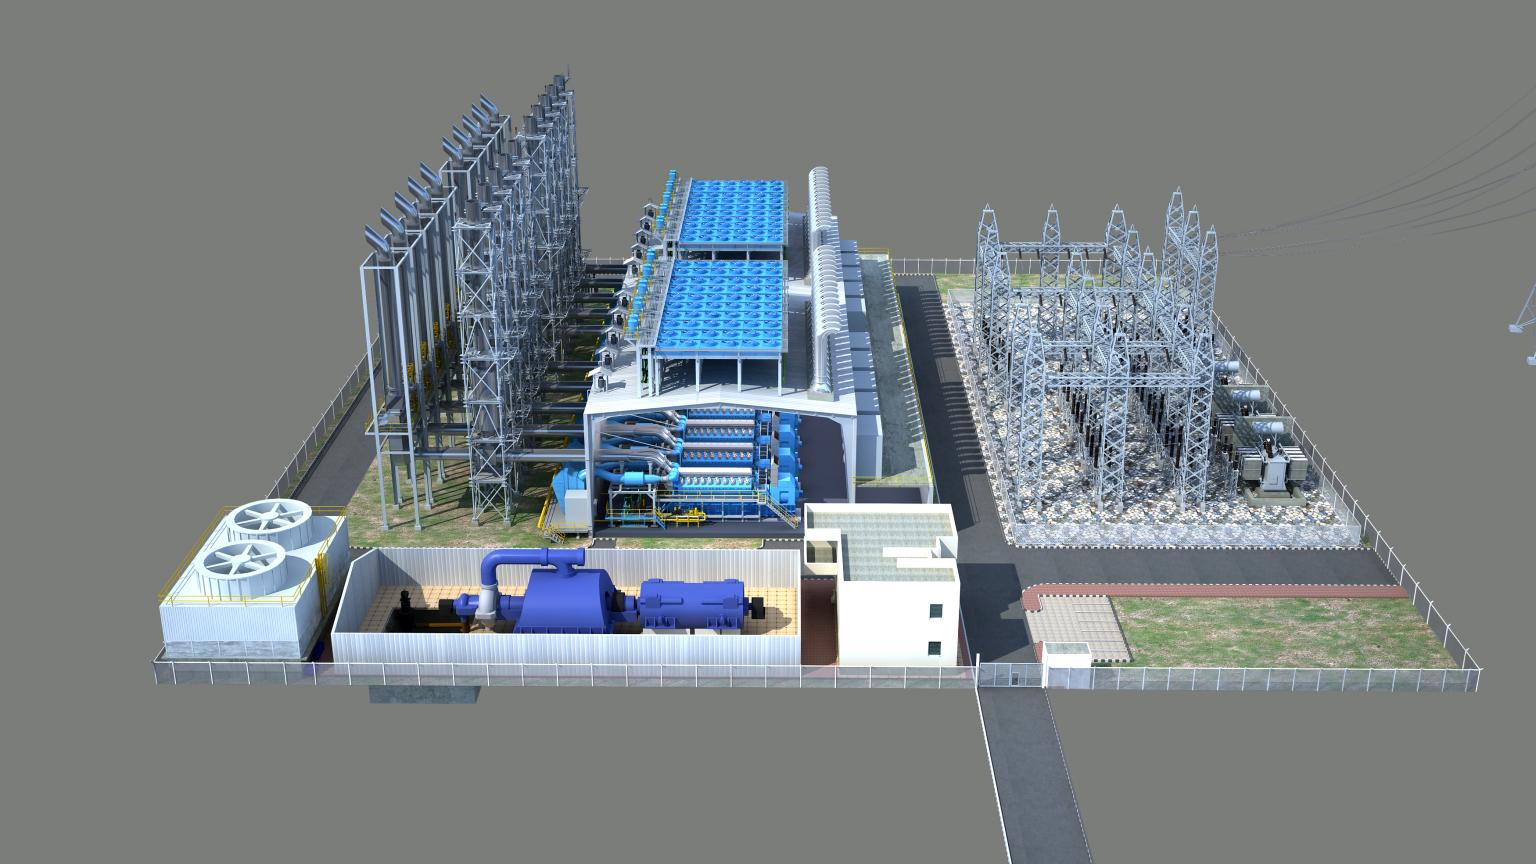 Modular development: this configuration features five gensets along with combined-cycle steam turbines